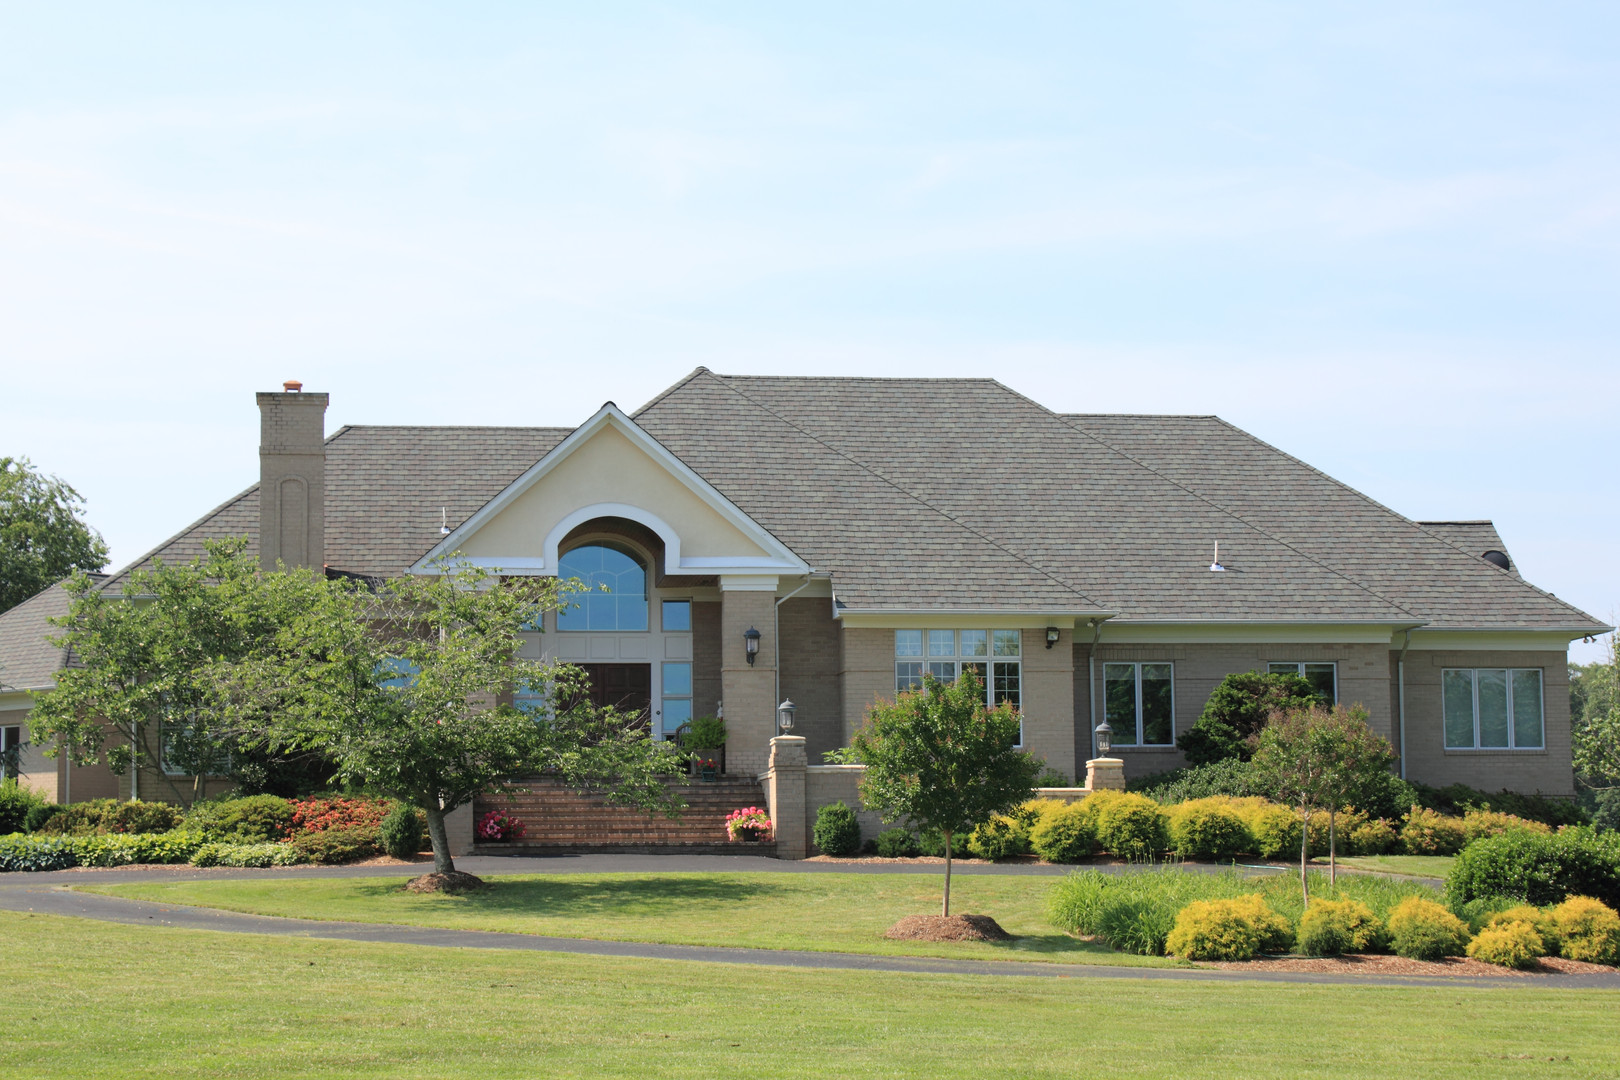 CertainTeed Grand Manor Roof in Bristow